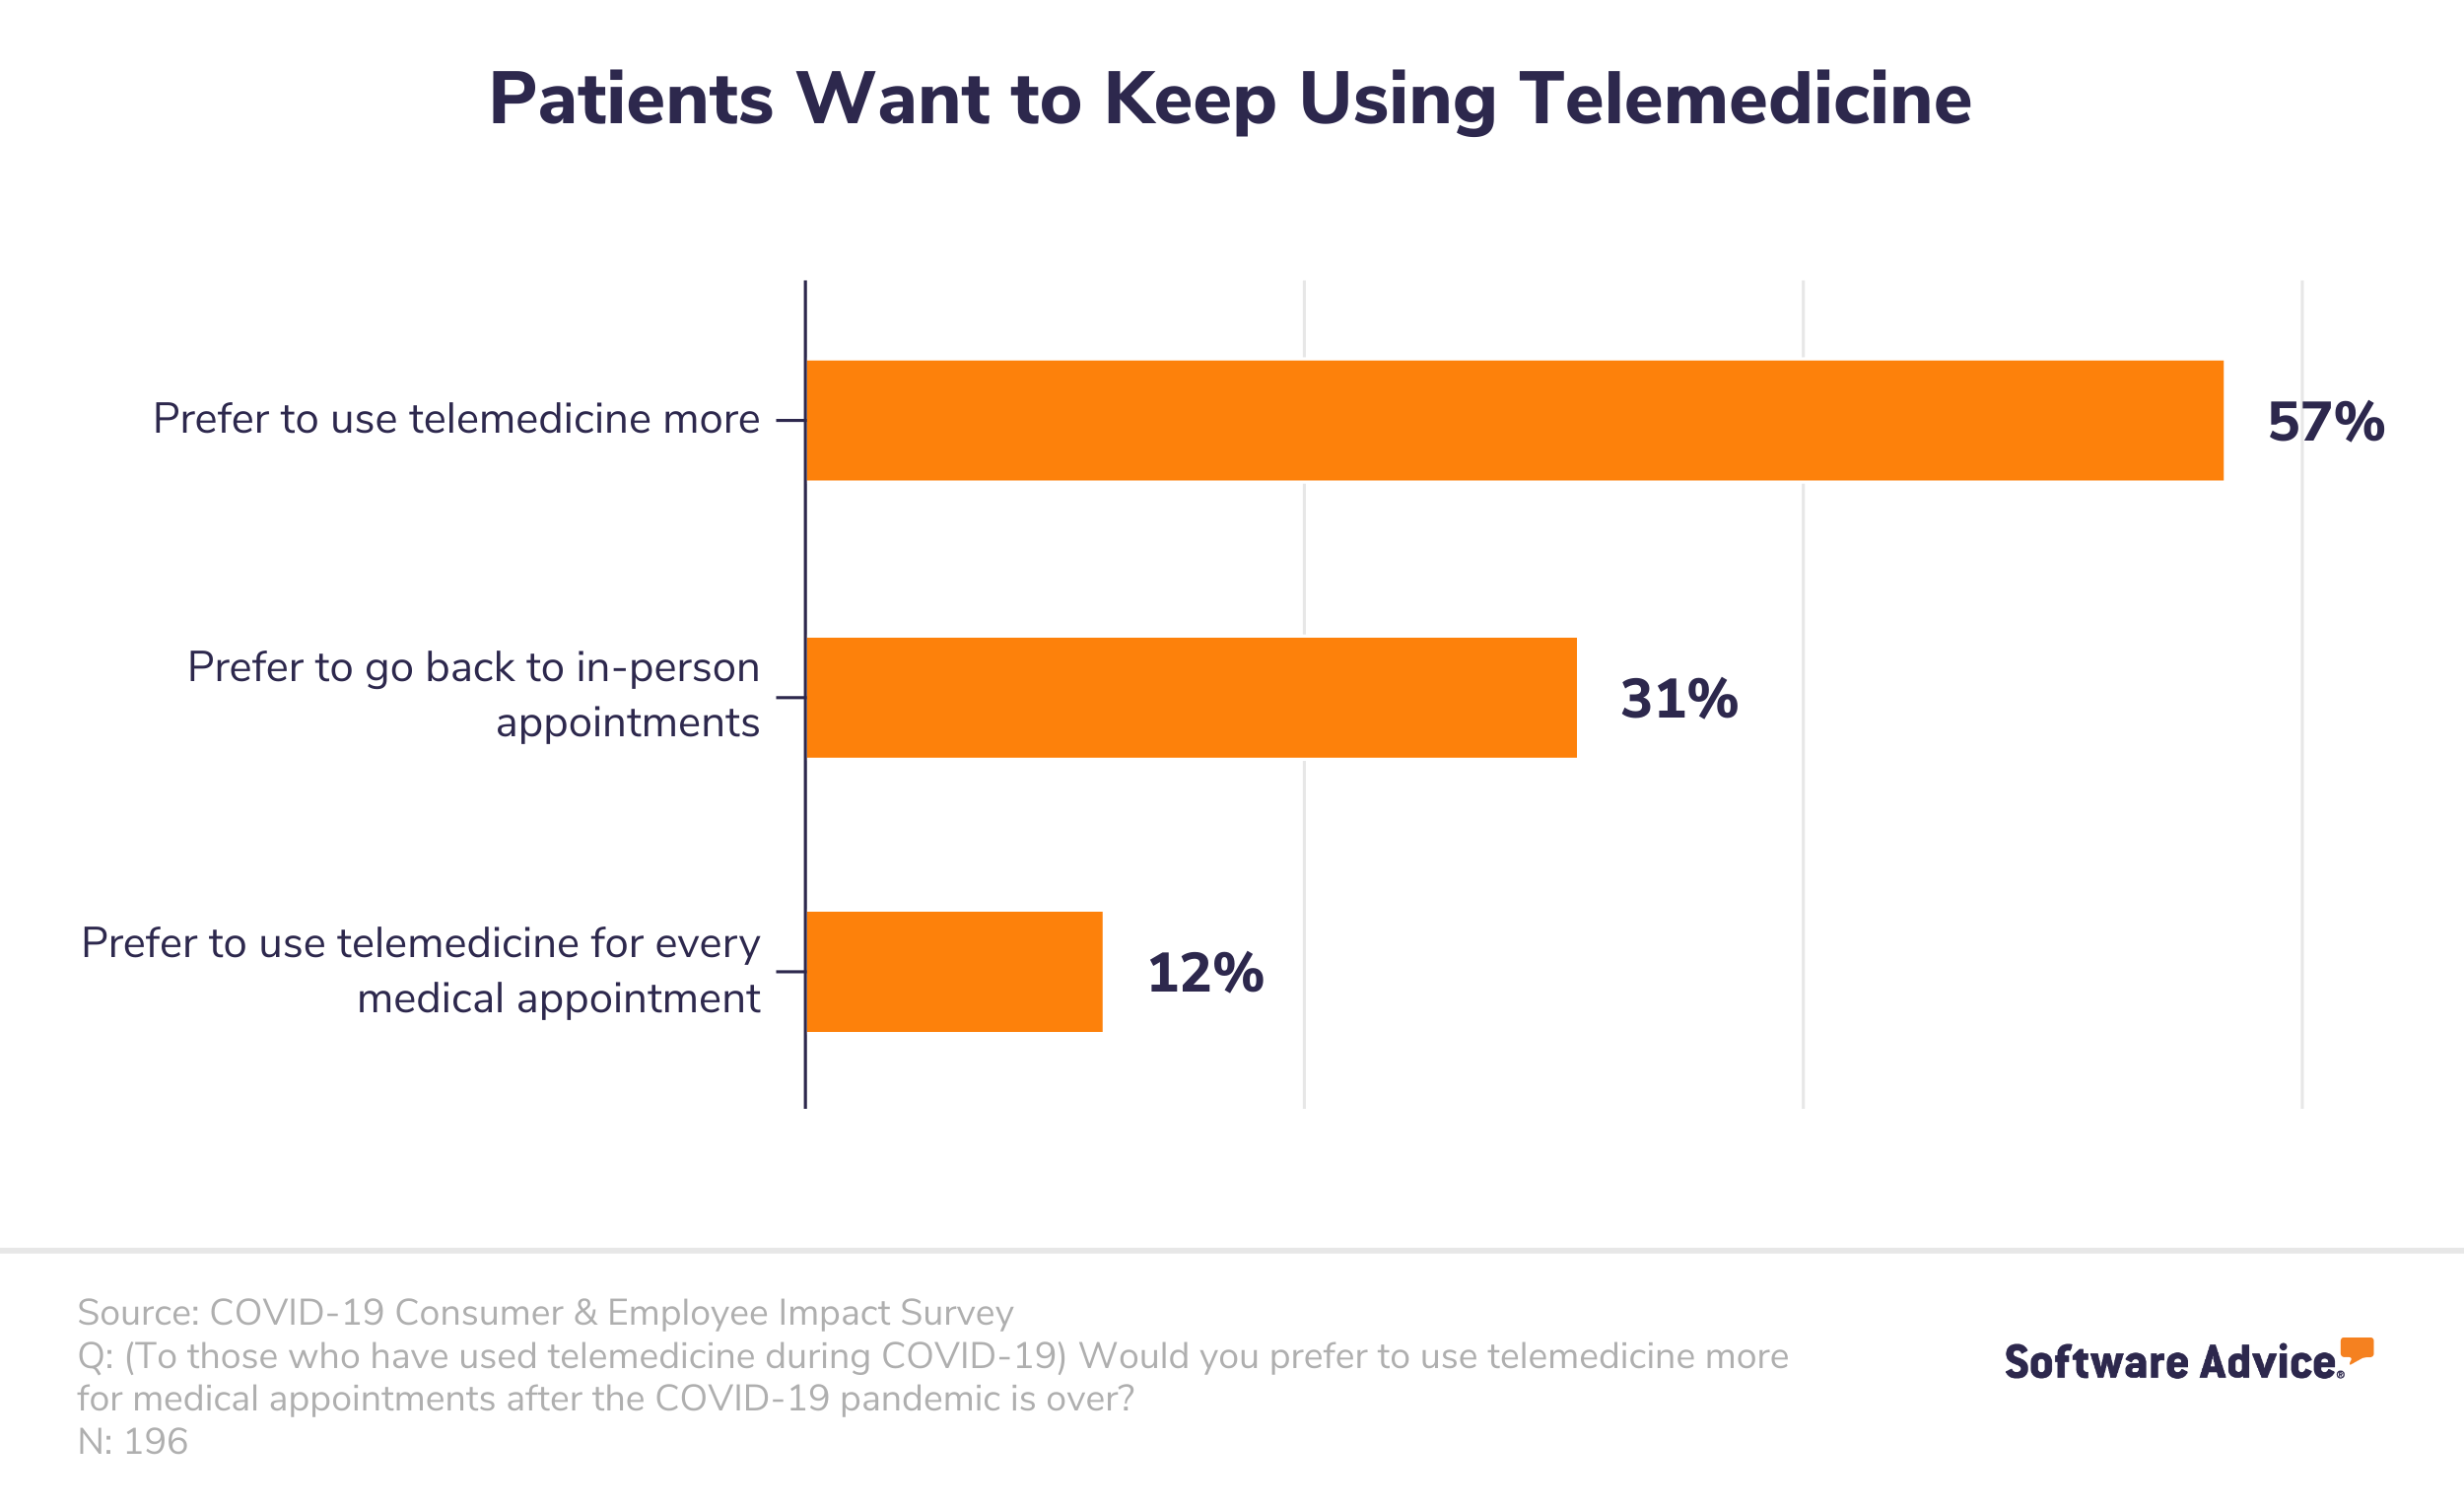 Patients who have used telemedicine during COVID-19 want to continue